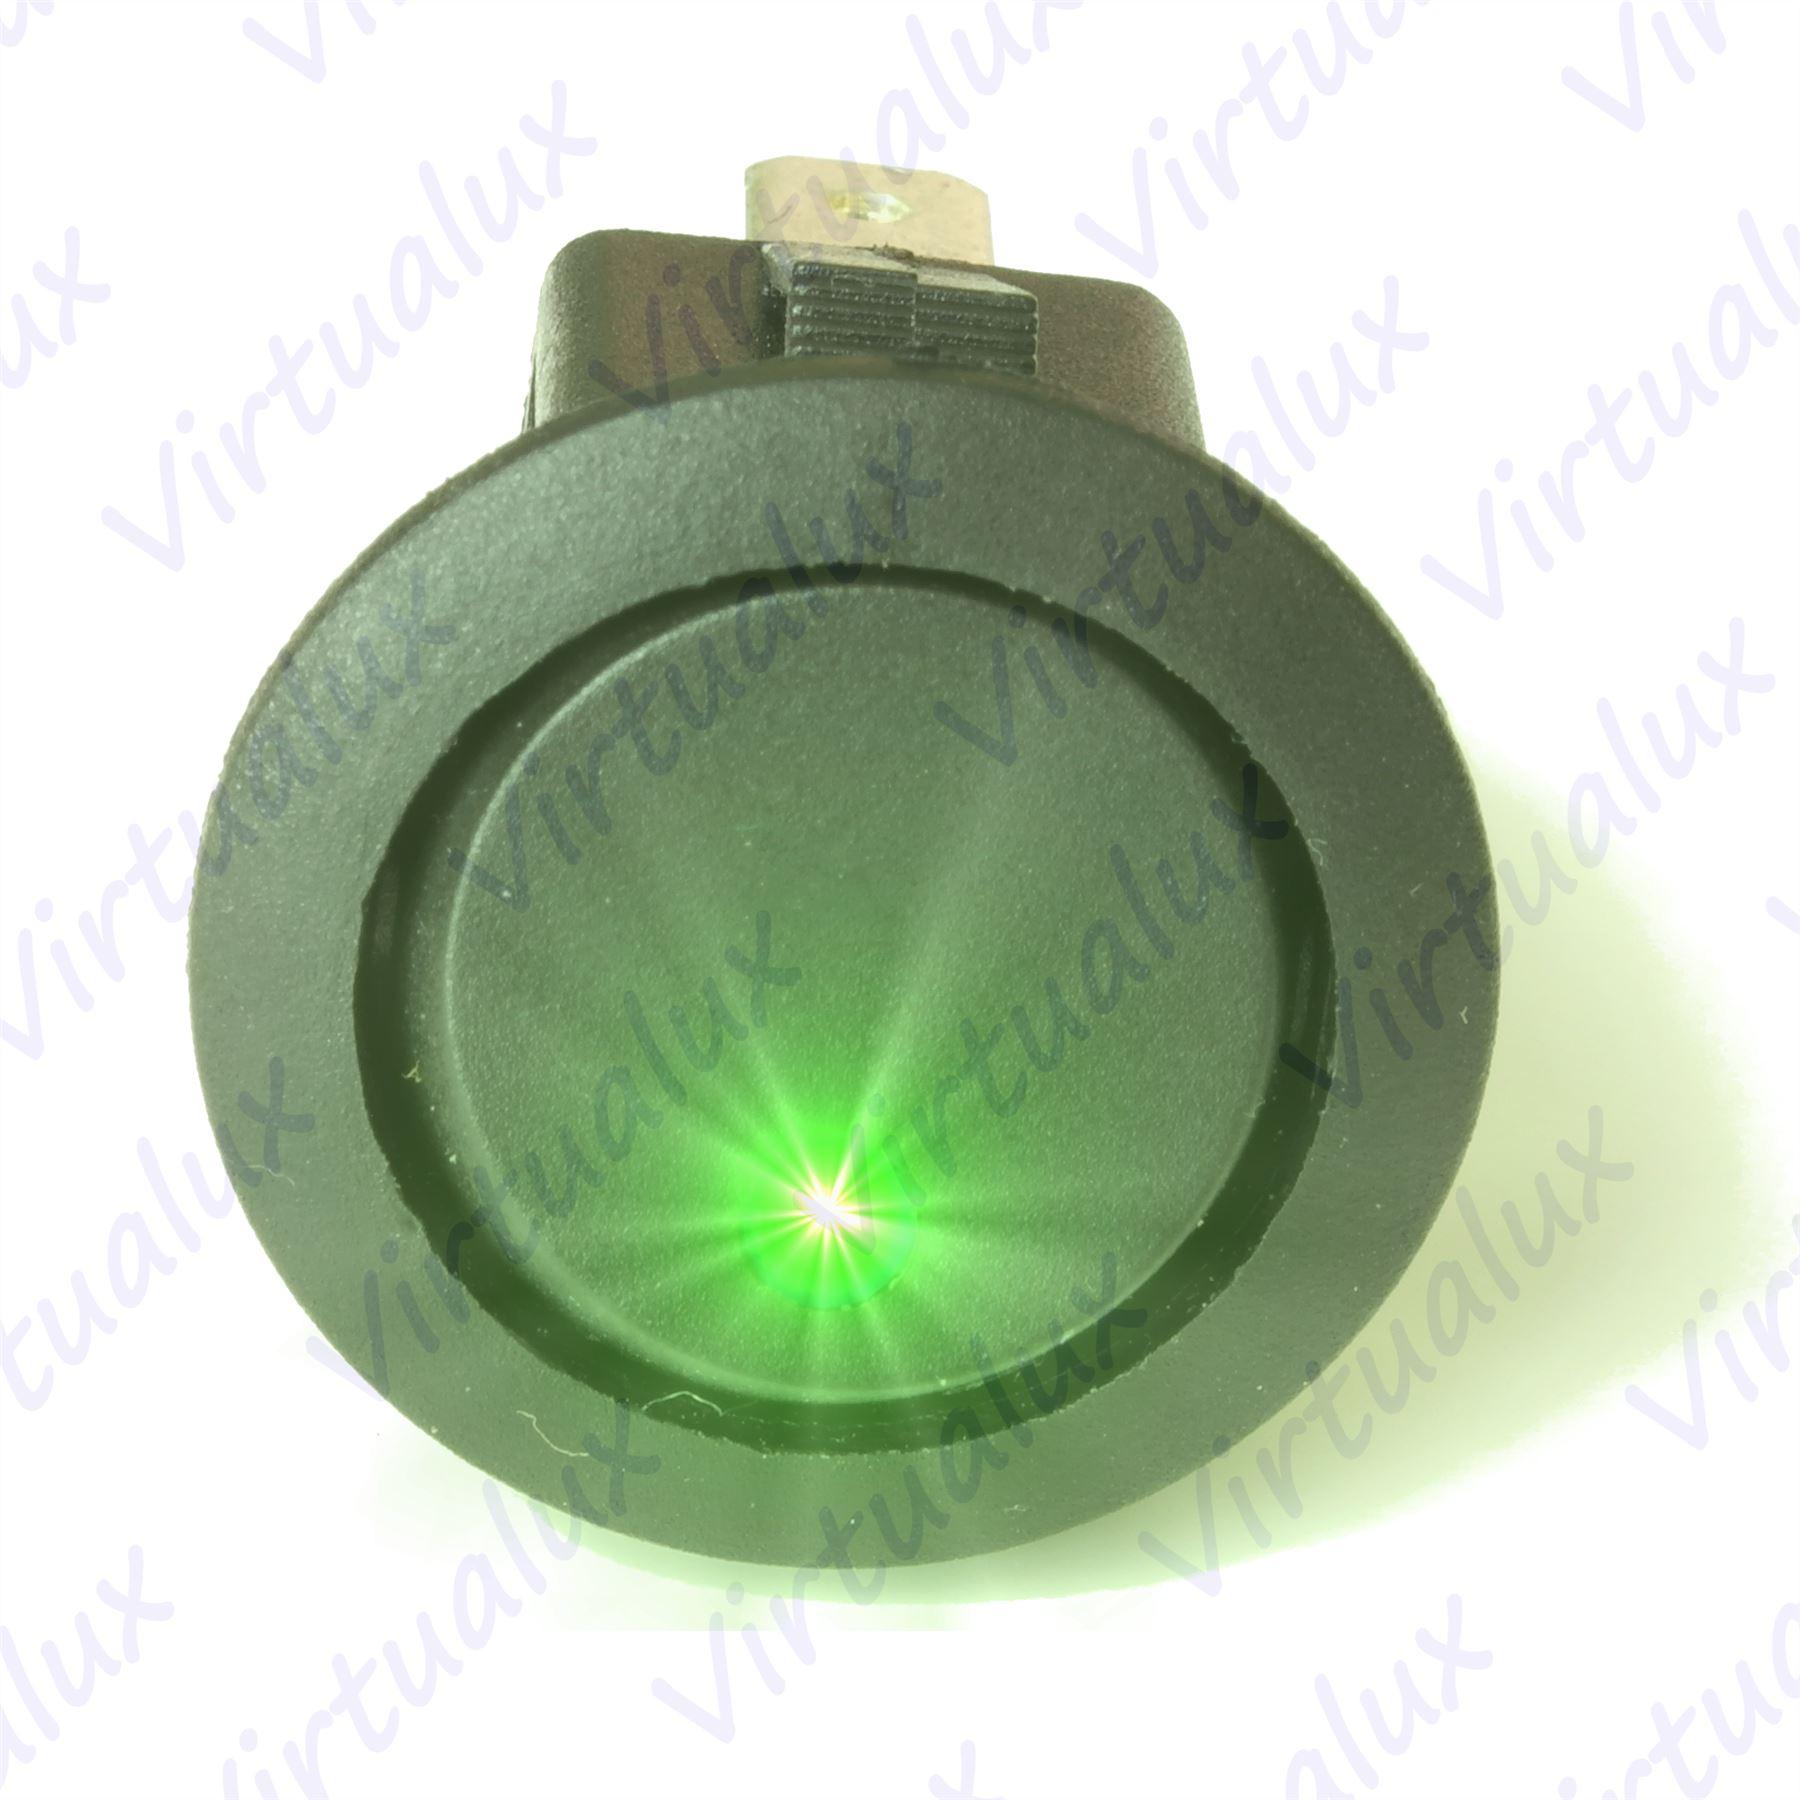 Blue Rocker Switch also 271886380110 together with 401194812352 besides 252416083655 moreover 371767136221. on on off round rocker switch led illuminated car dashboard